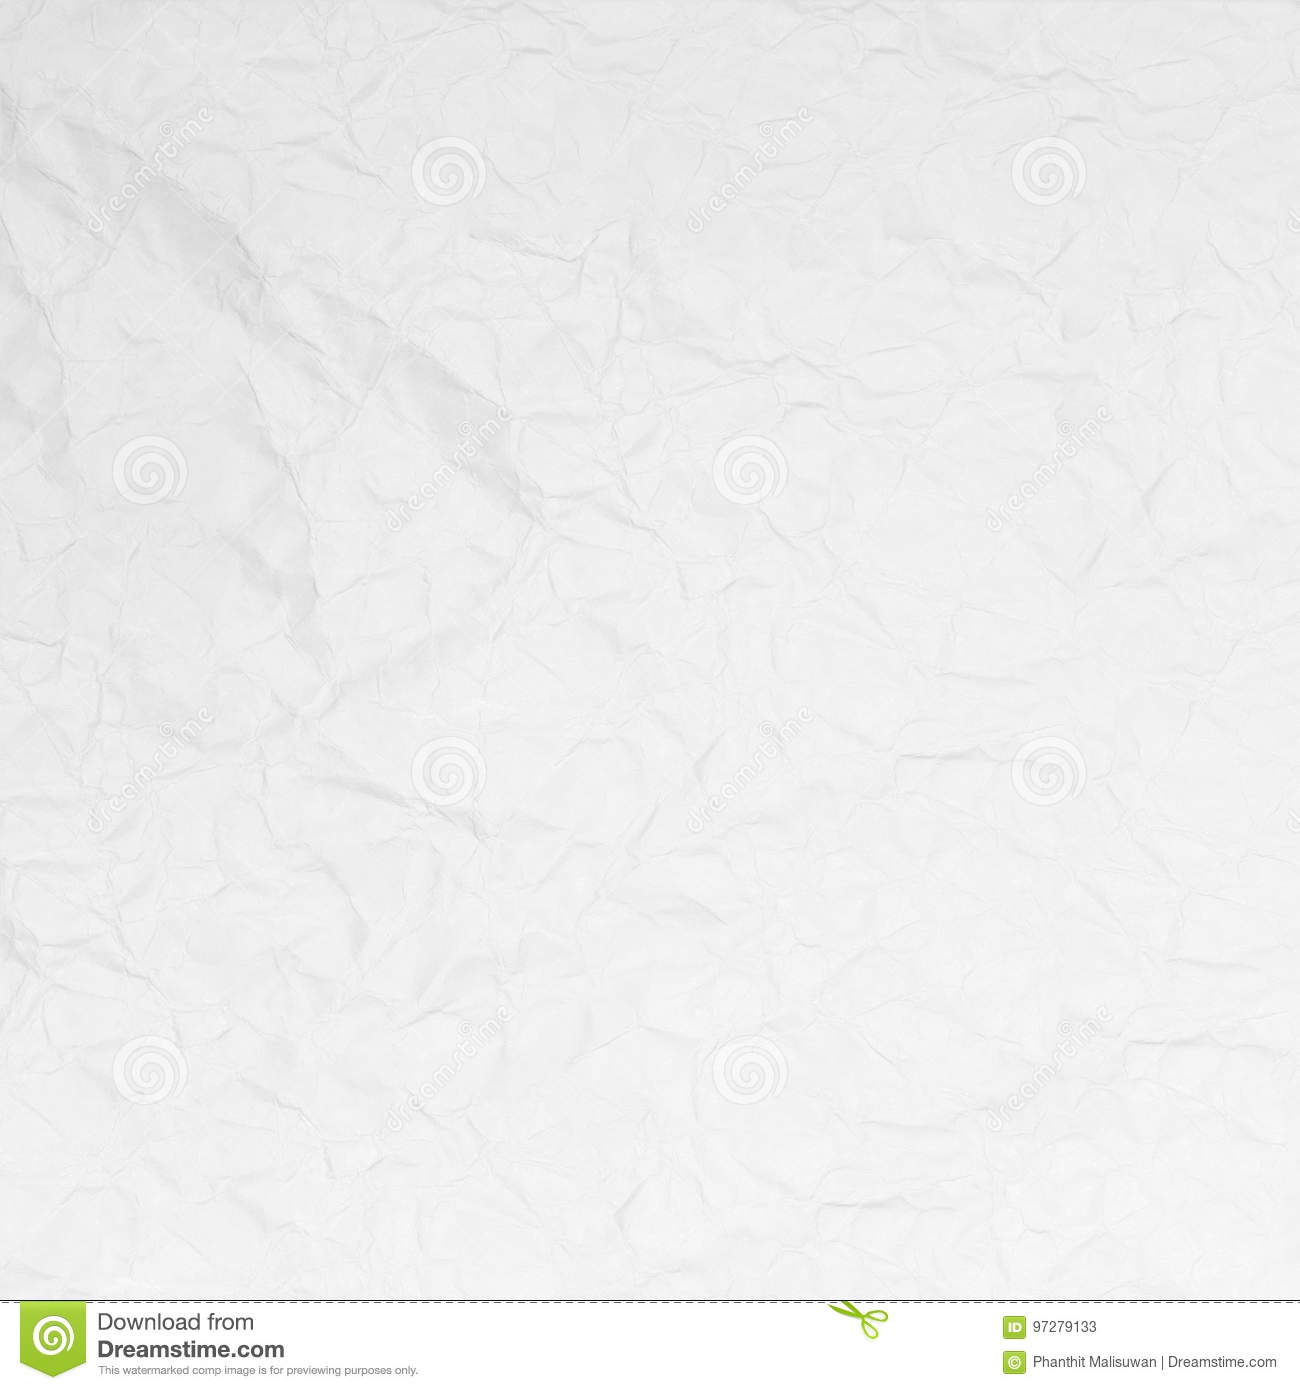 Crumpled white paper texture background for design.